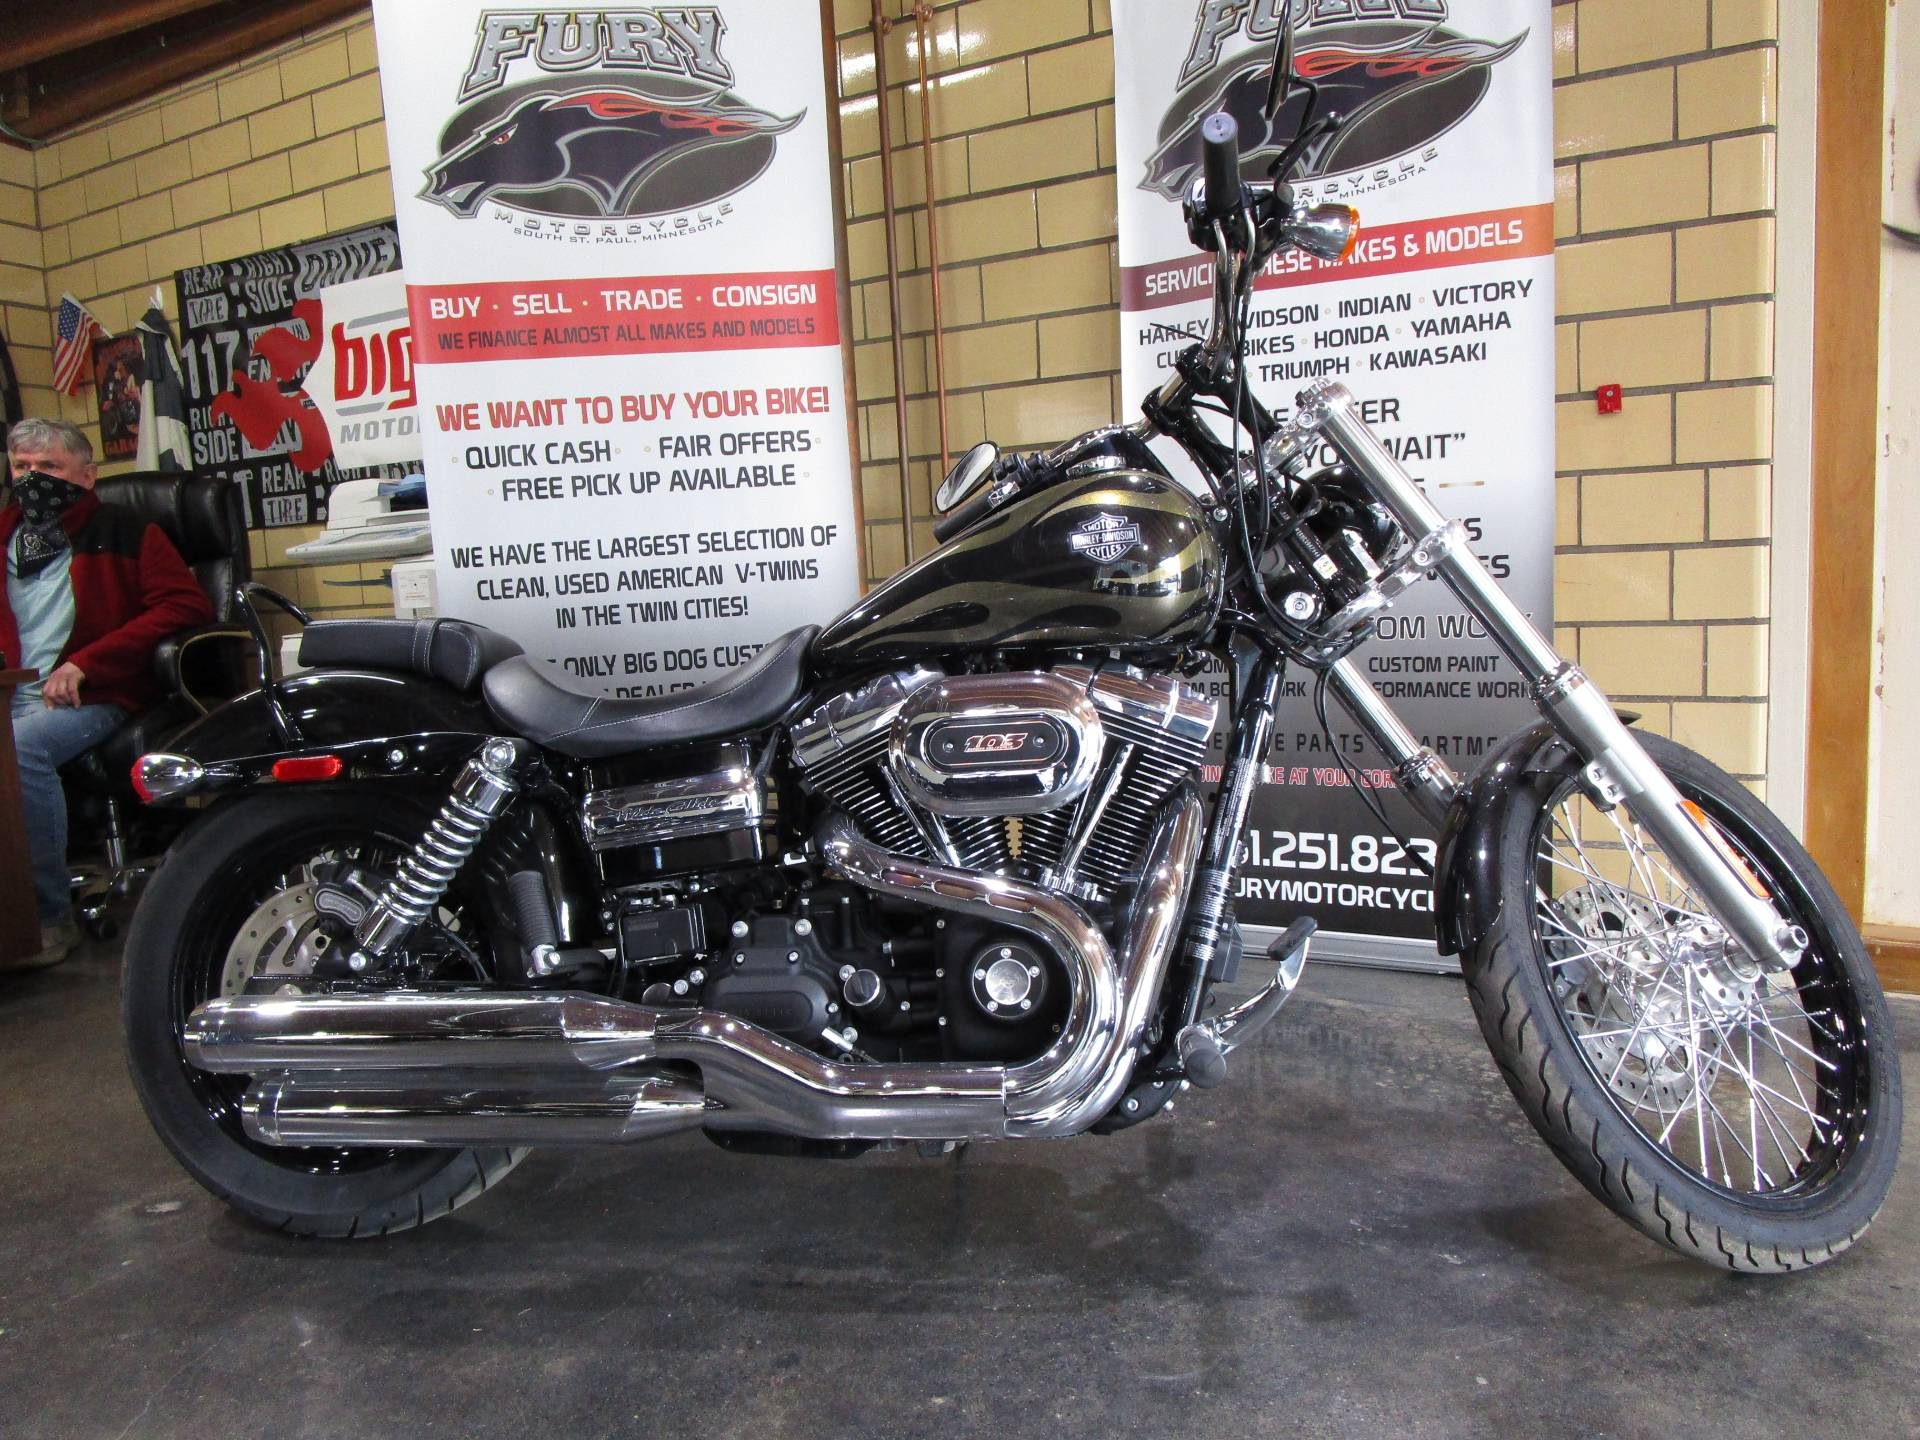 2017 Harley-Davidson Wide Glide in South Saint Paul, Minnesota - Photo 1